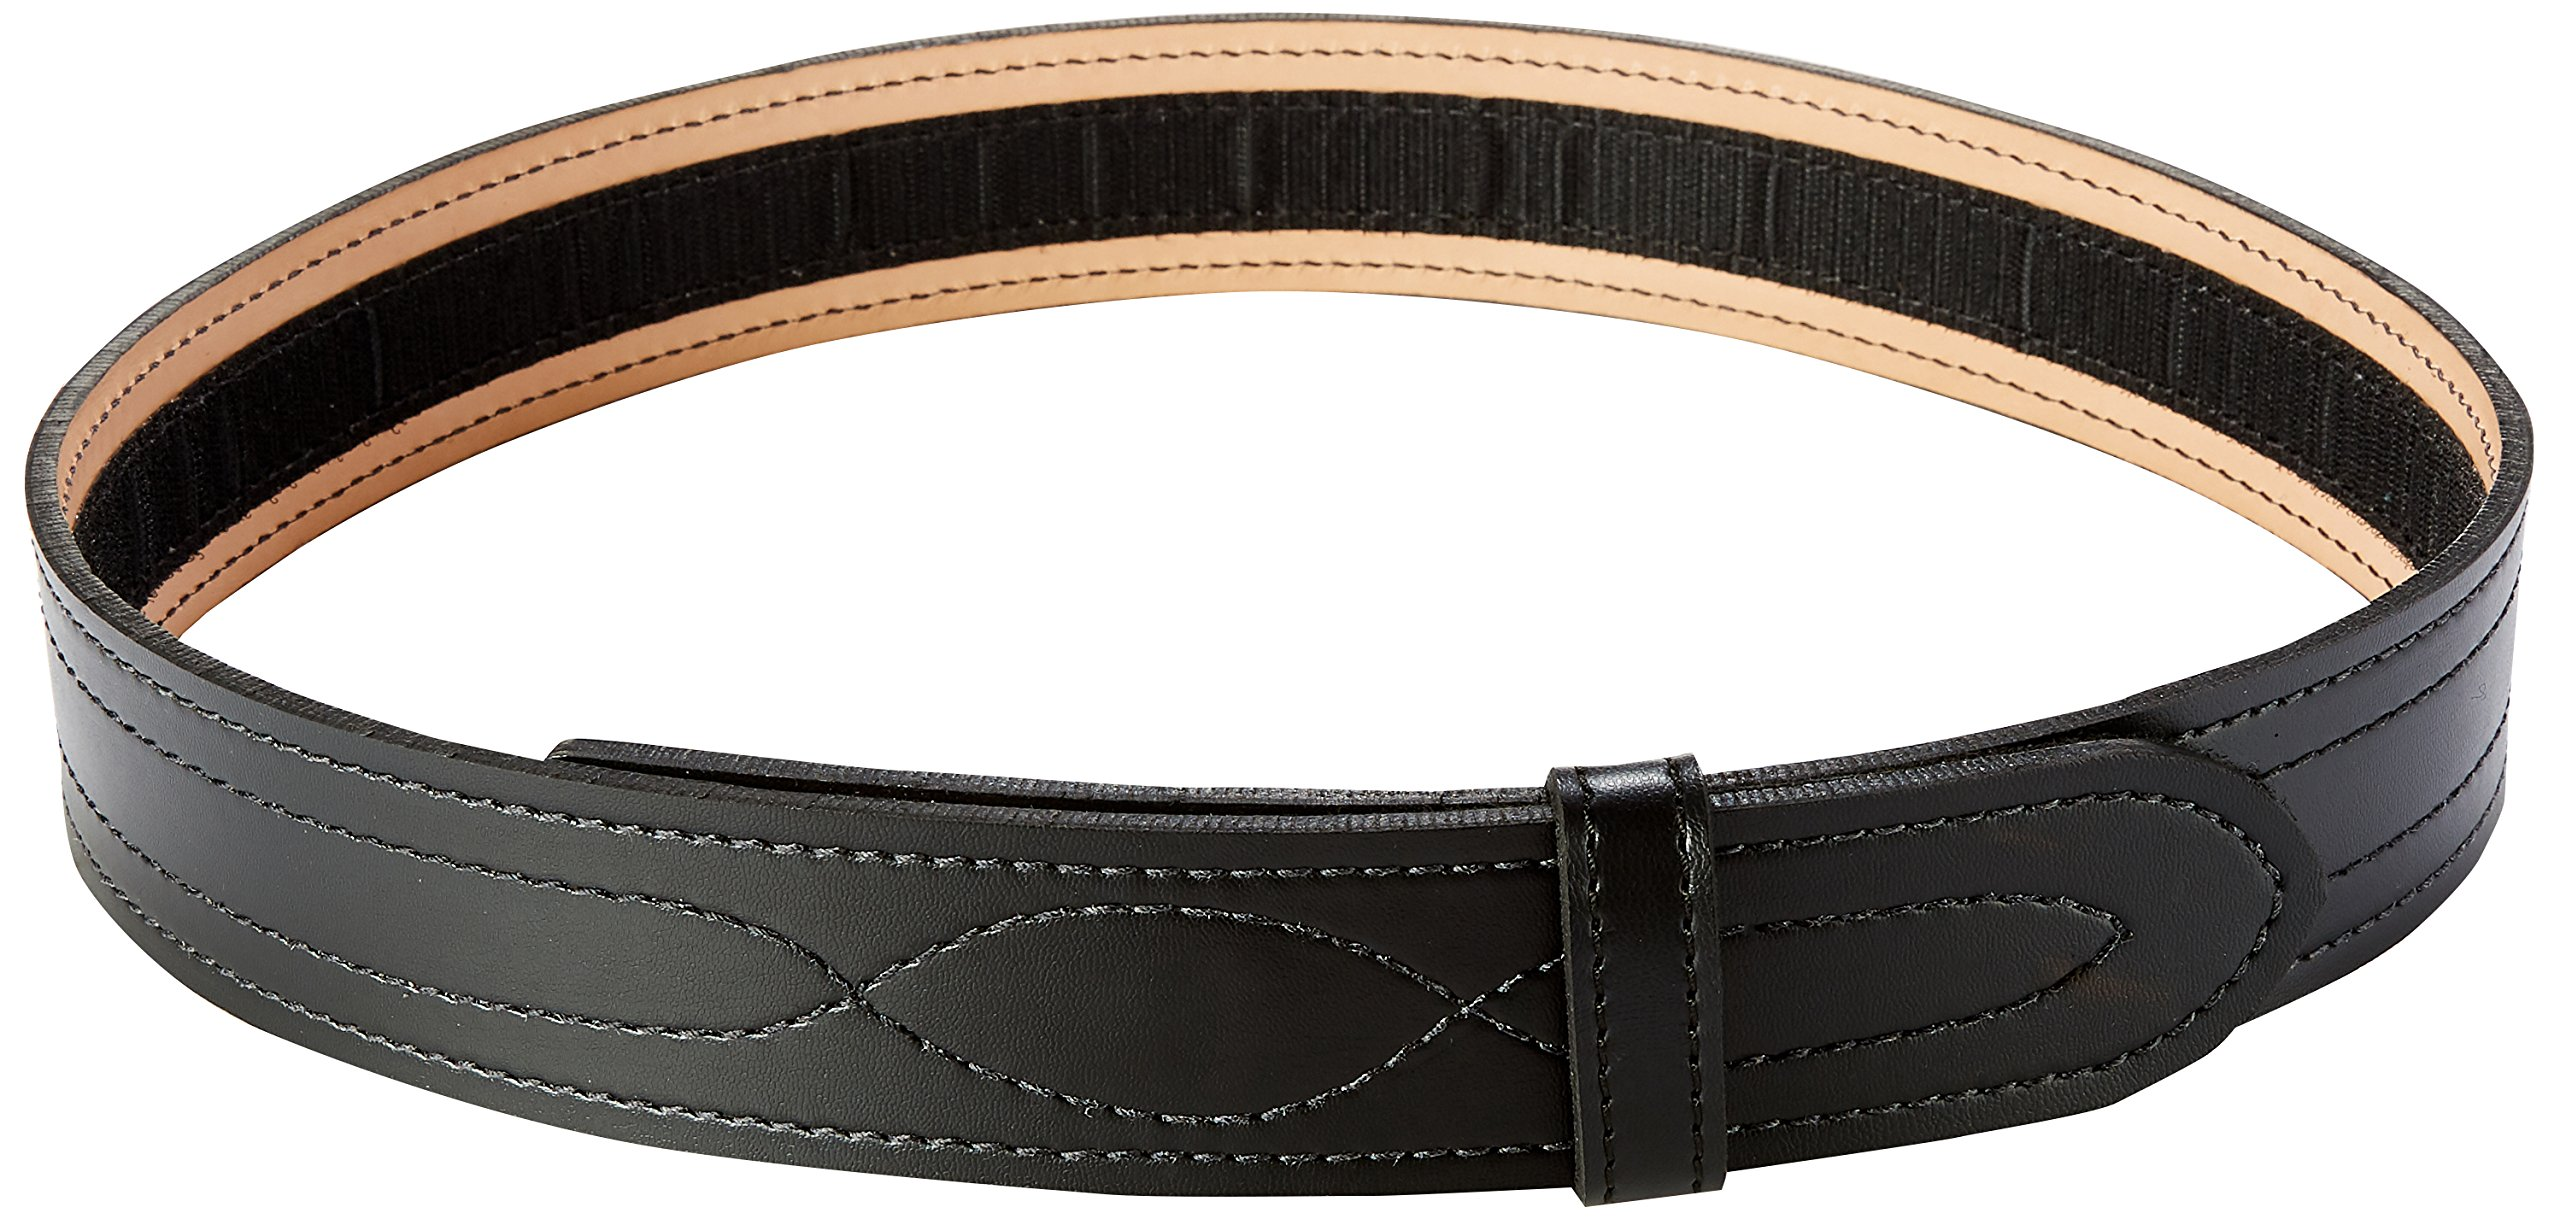 Safariland 94 Duty Belt from Buckleless Duty Belt (Plain Black, Size 40) by Safariland